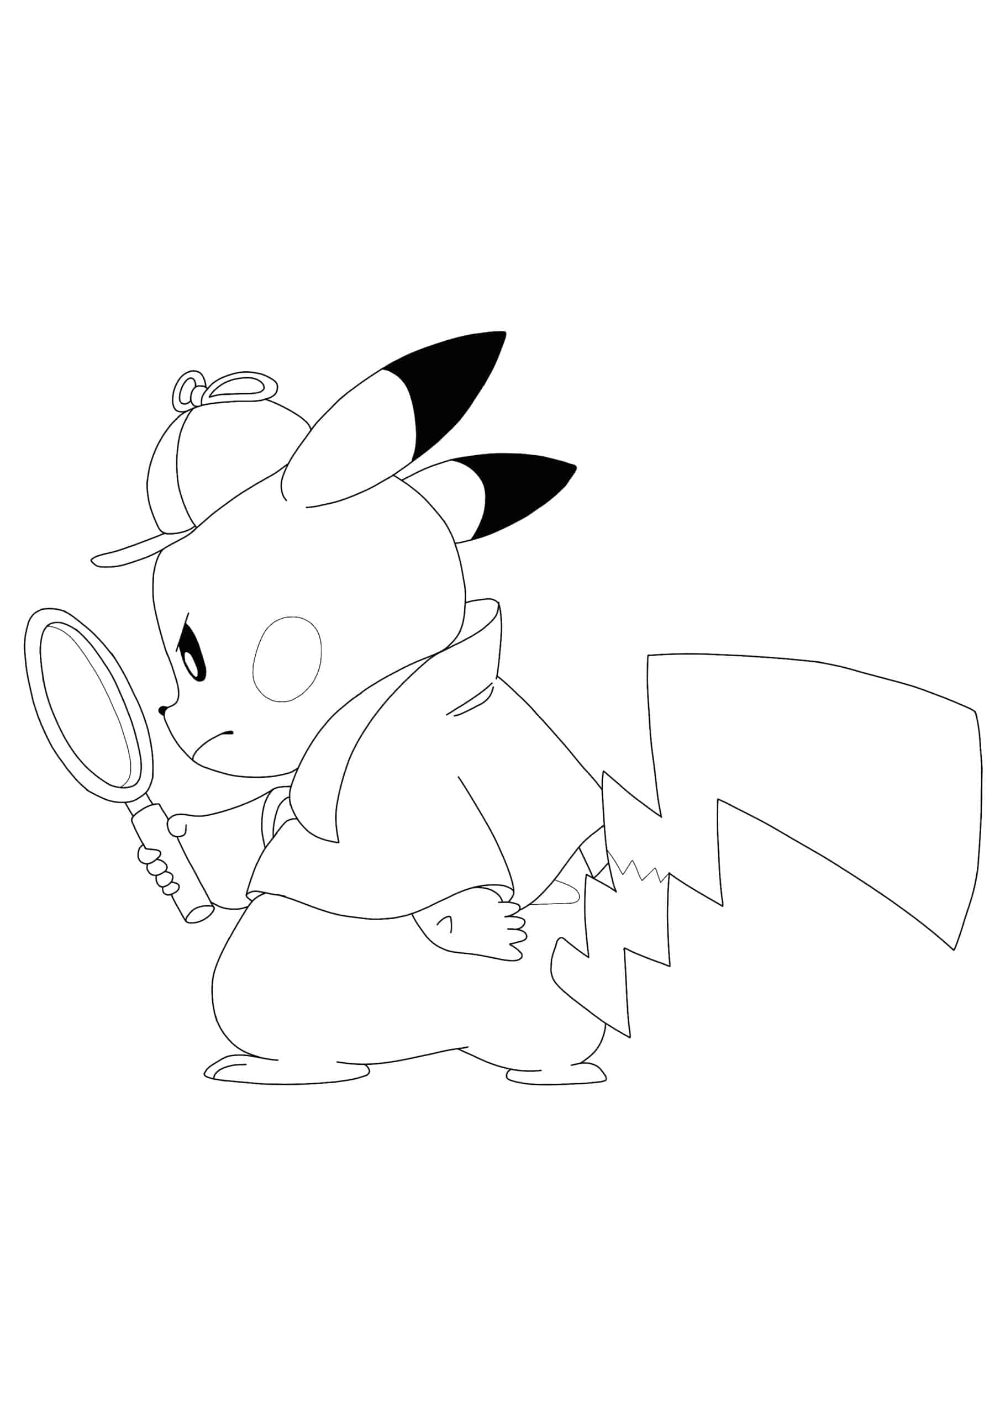 Detective Pikachu Coloring Pages 2 Free Coloring Sheets 2020 Pikachu Coloring Page Pokemon Coloring Pages Coloring Pages